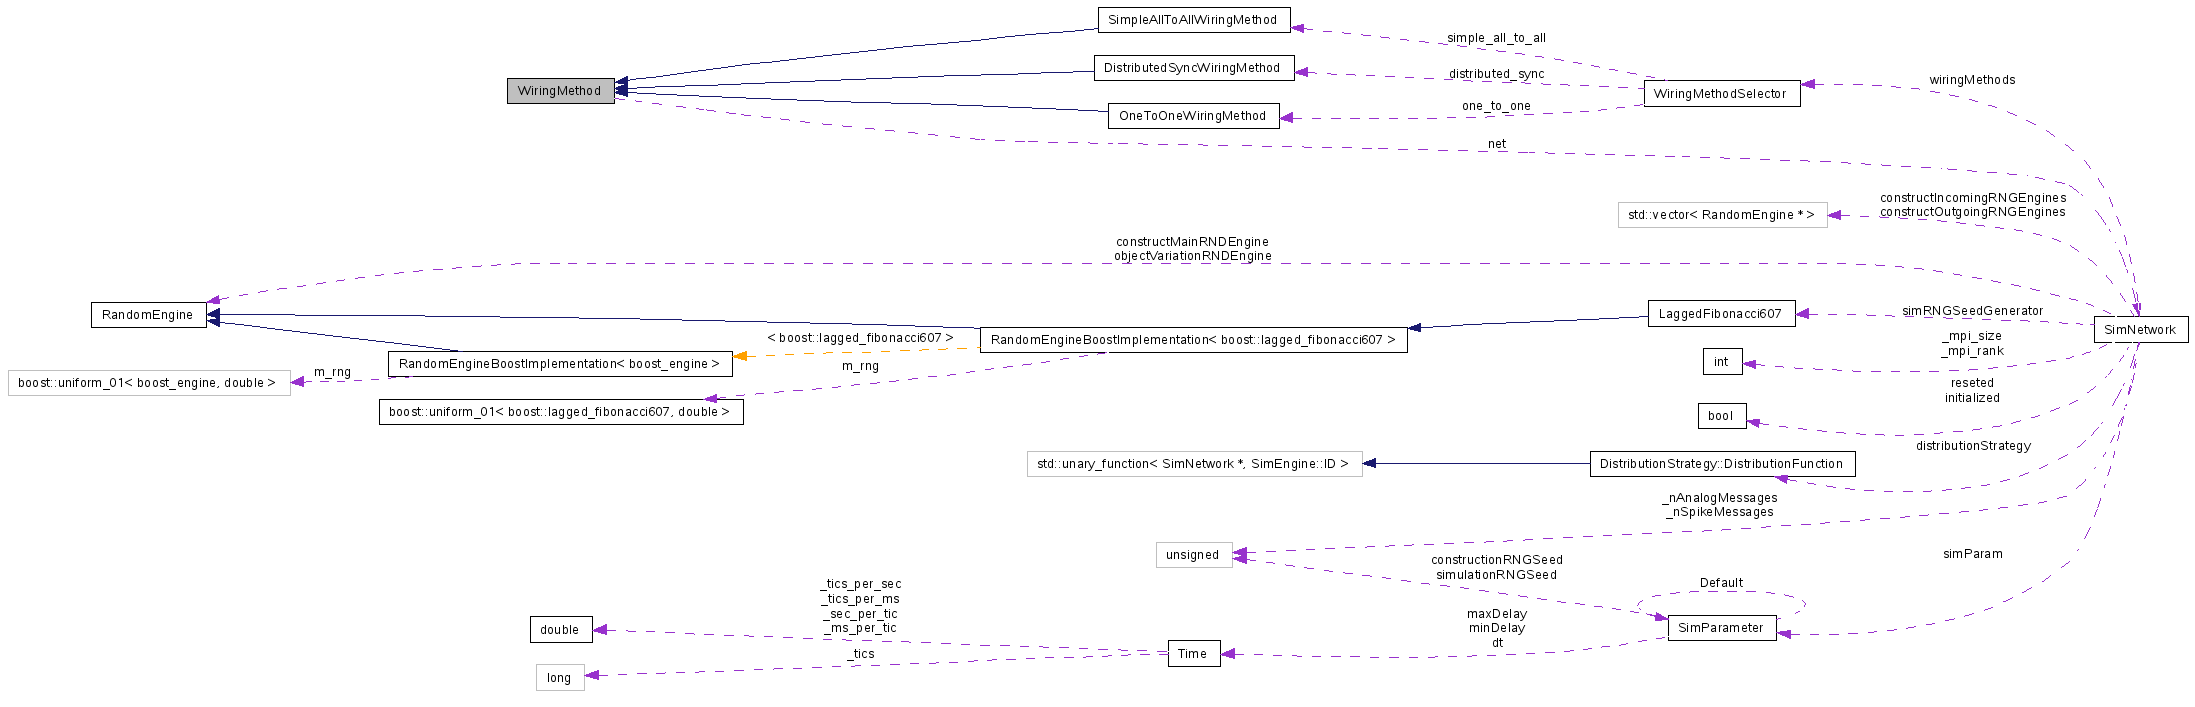 Pcsim Wiringmethod Class Reference Wiring Messages Collaboration Graph